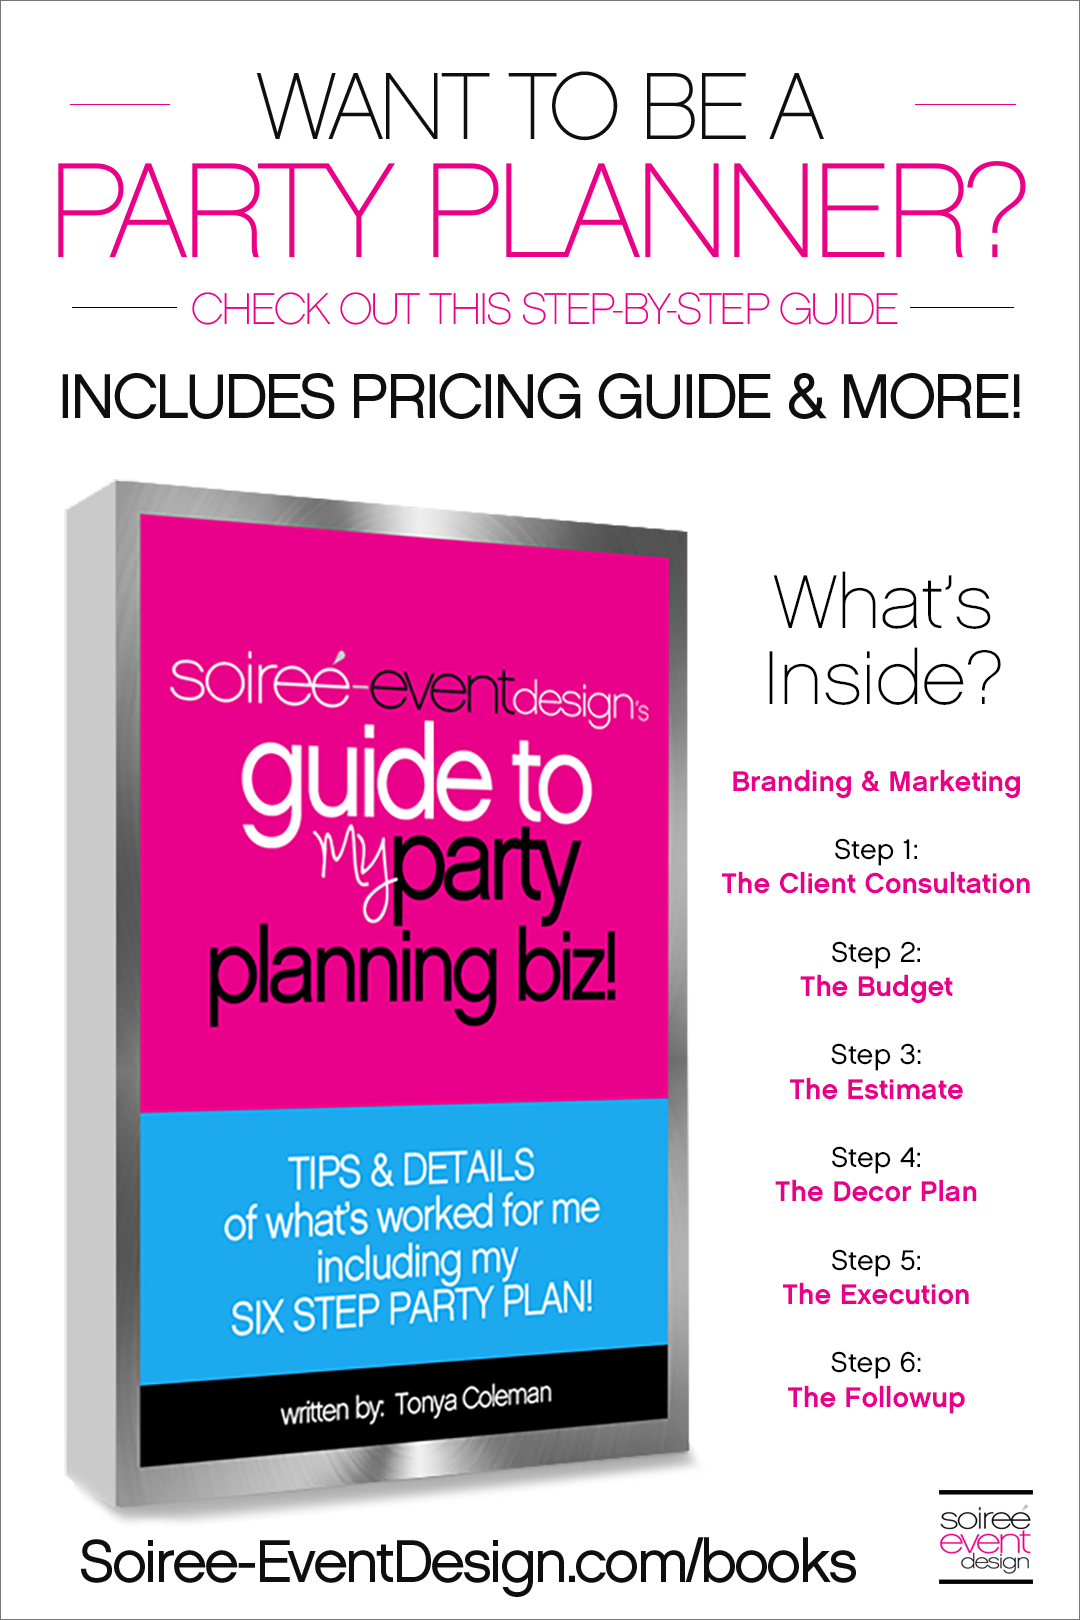 How To Start a Party Planning Business - Soiree Event Design Check out this ebook on I started my party planning business with all the details including pricing!